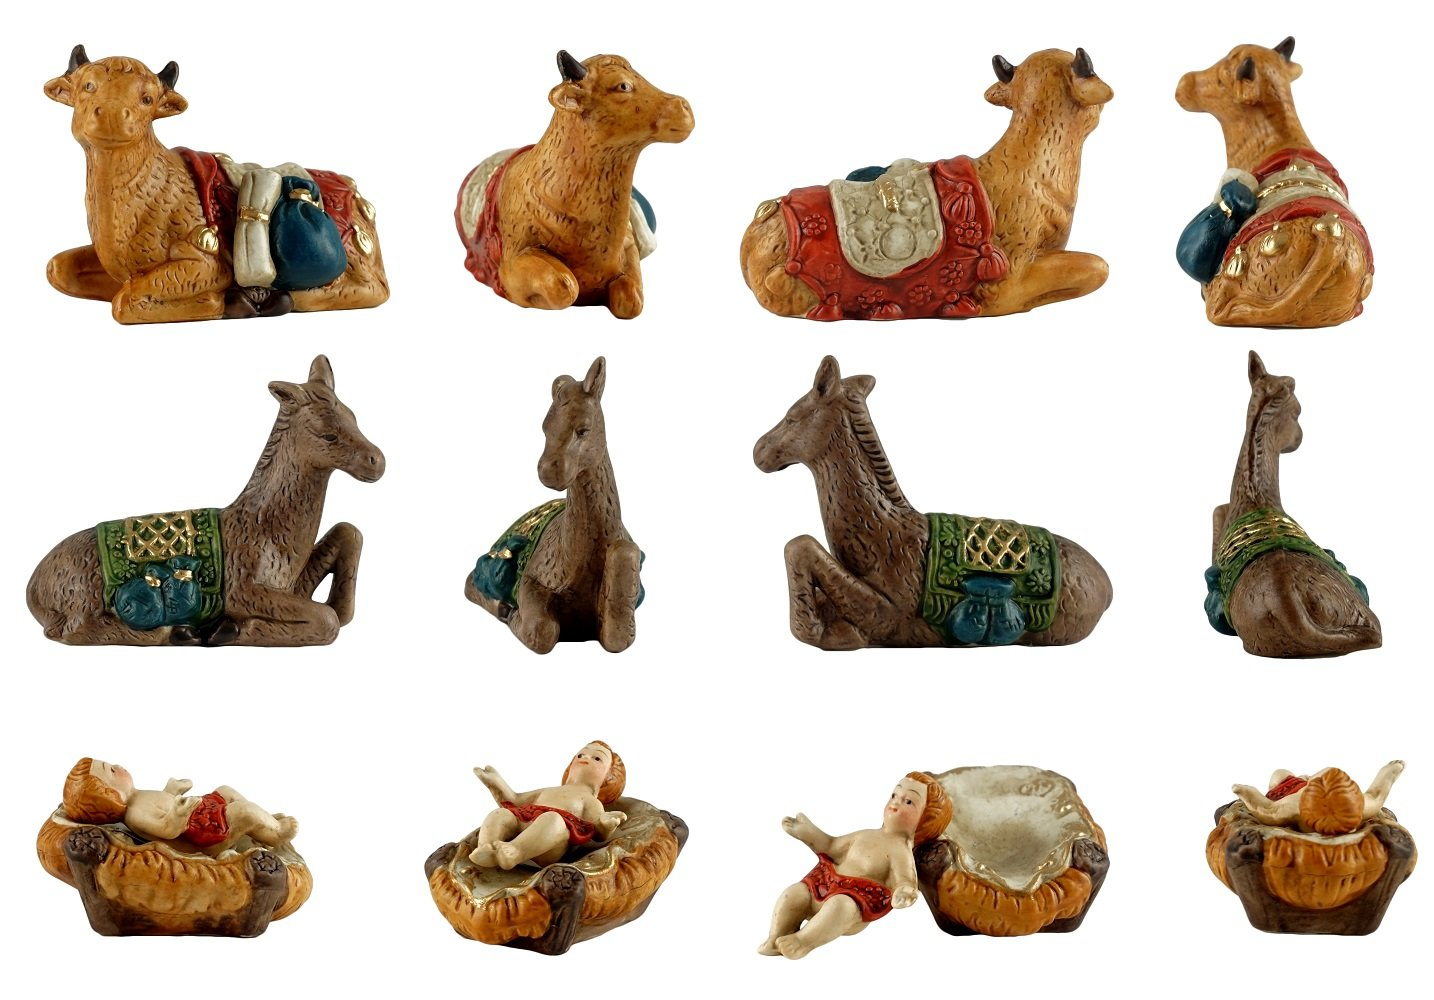 Party Explosions Baby Jesus Nativity Scene Ceramic Figurine Party Explosions®